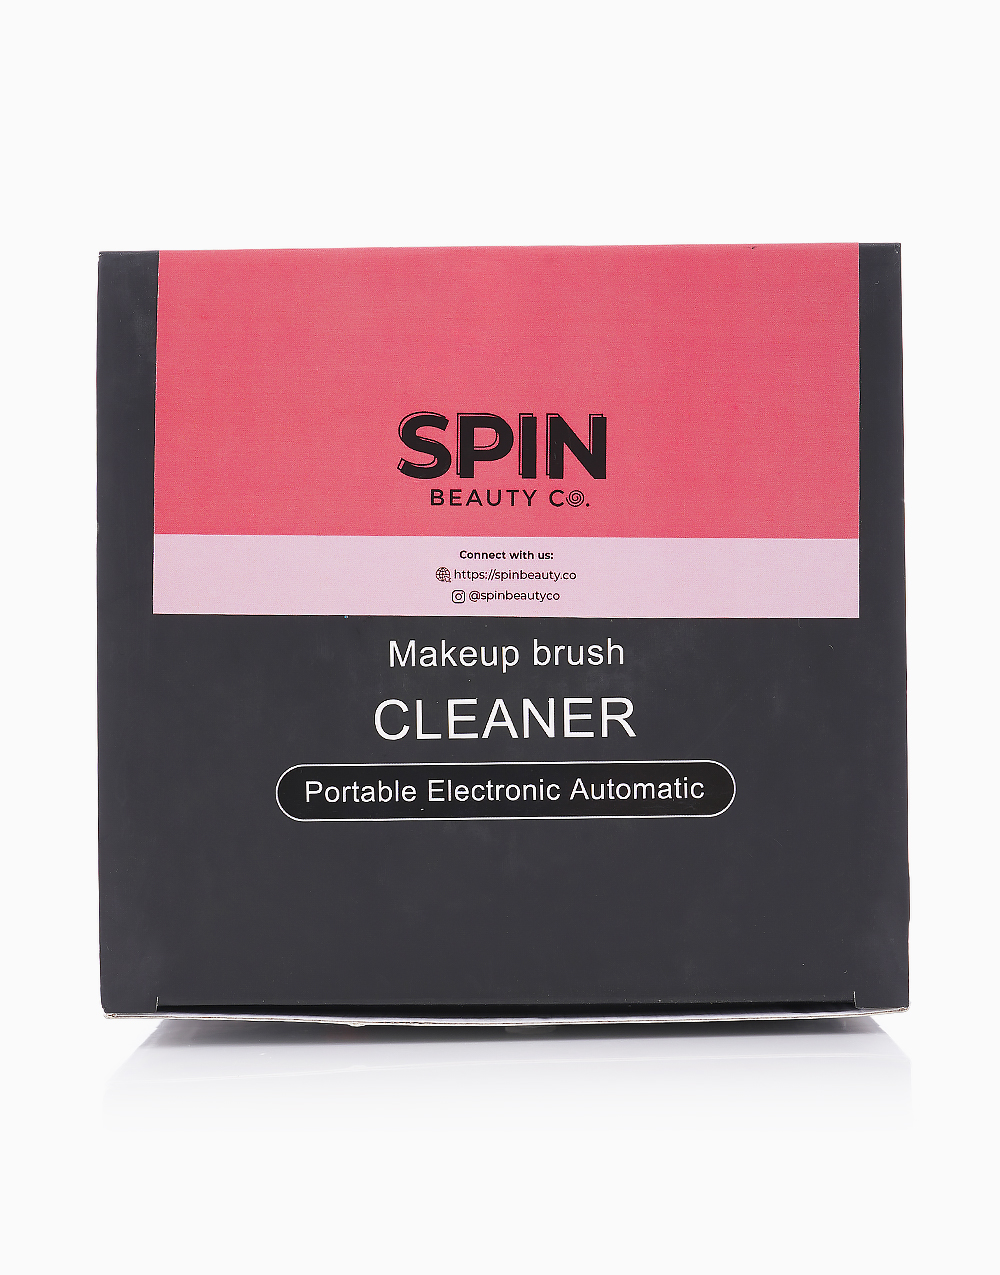 Auto Brush Cleaner and Dryer by Spin Beauty Co